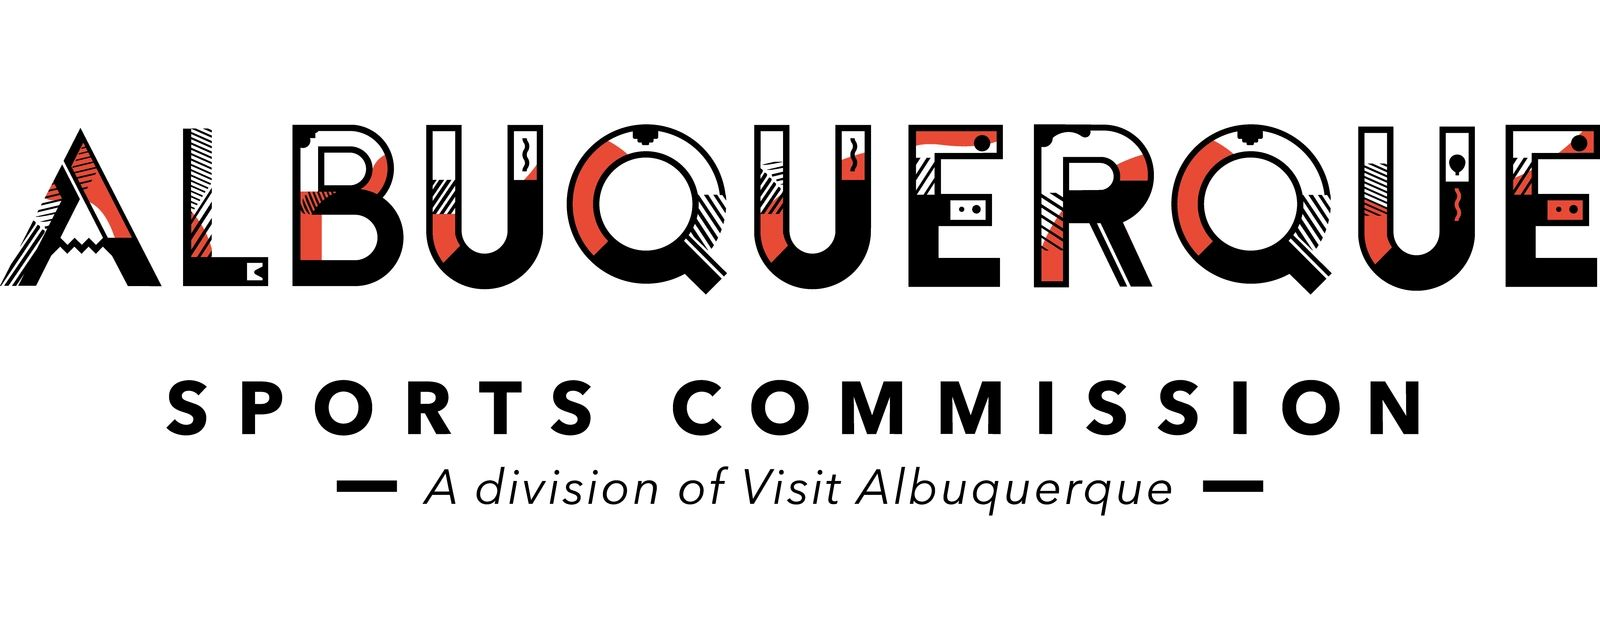 Albuquerque Sports Commission logo